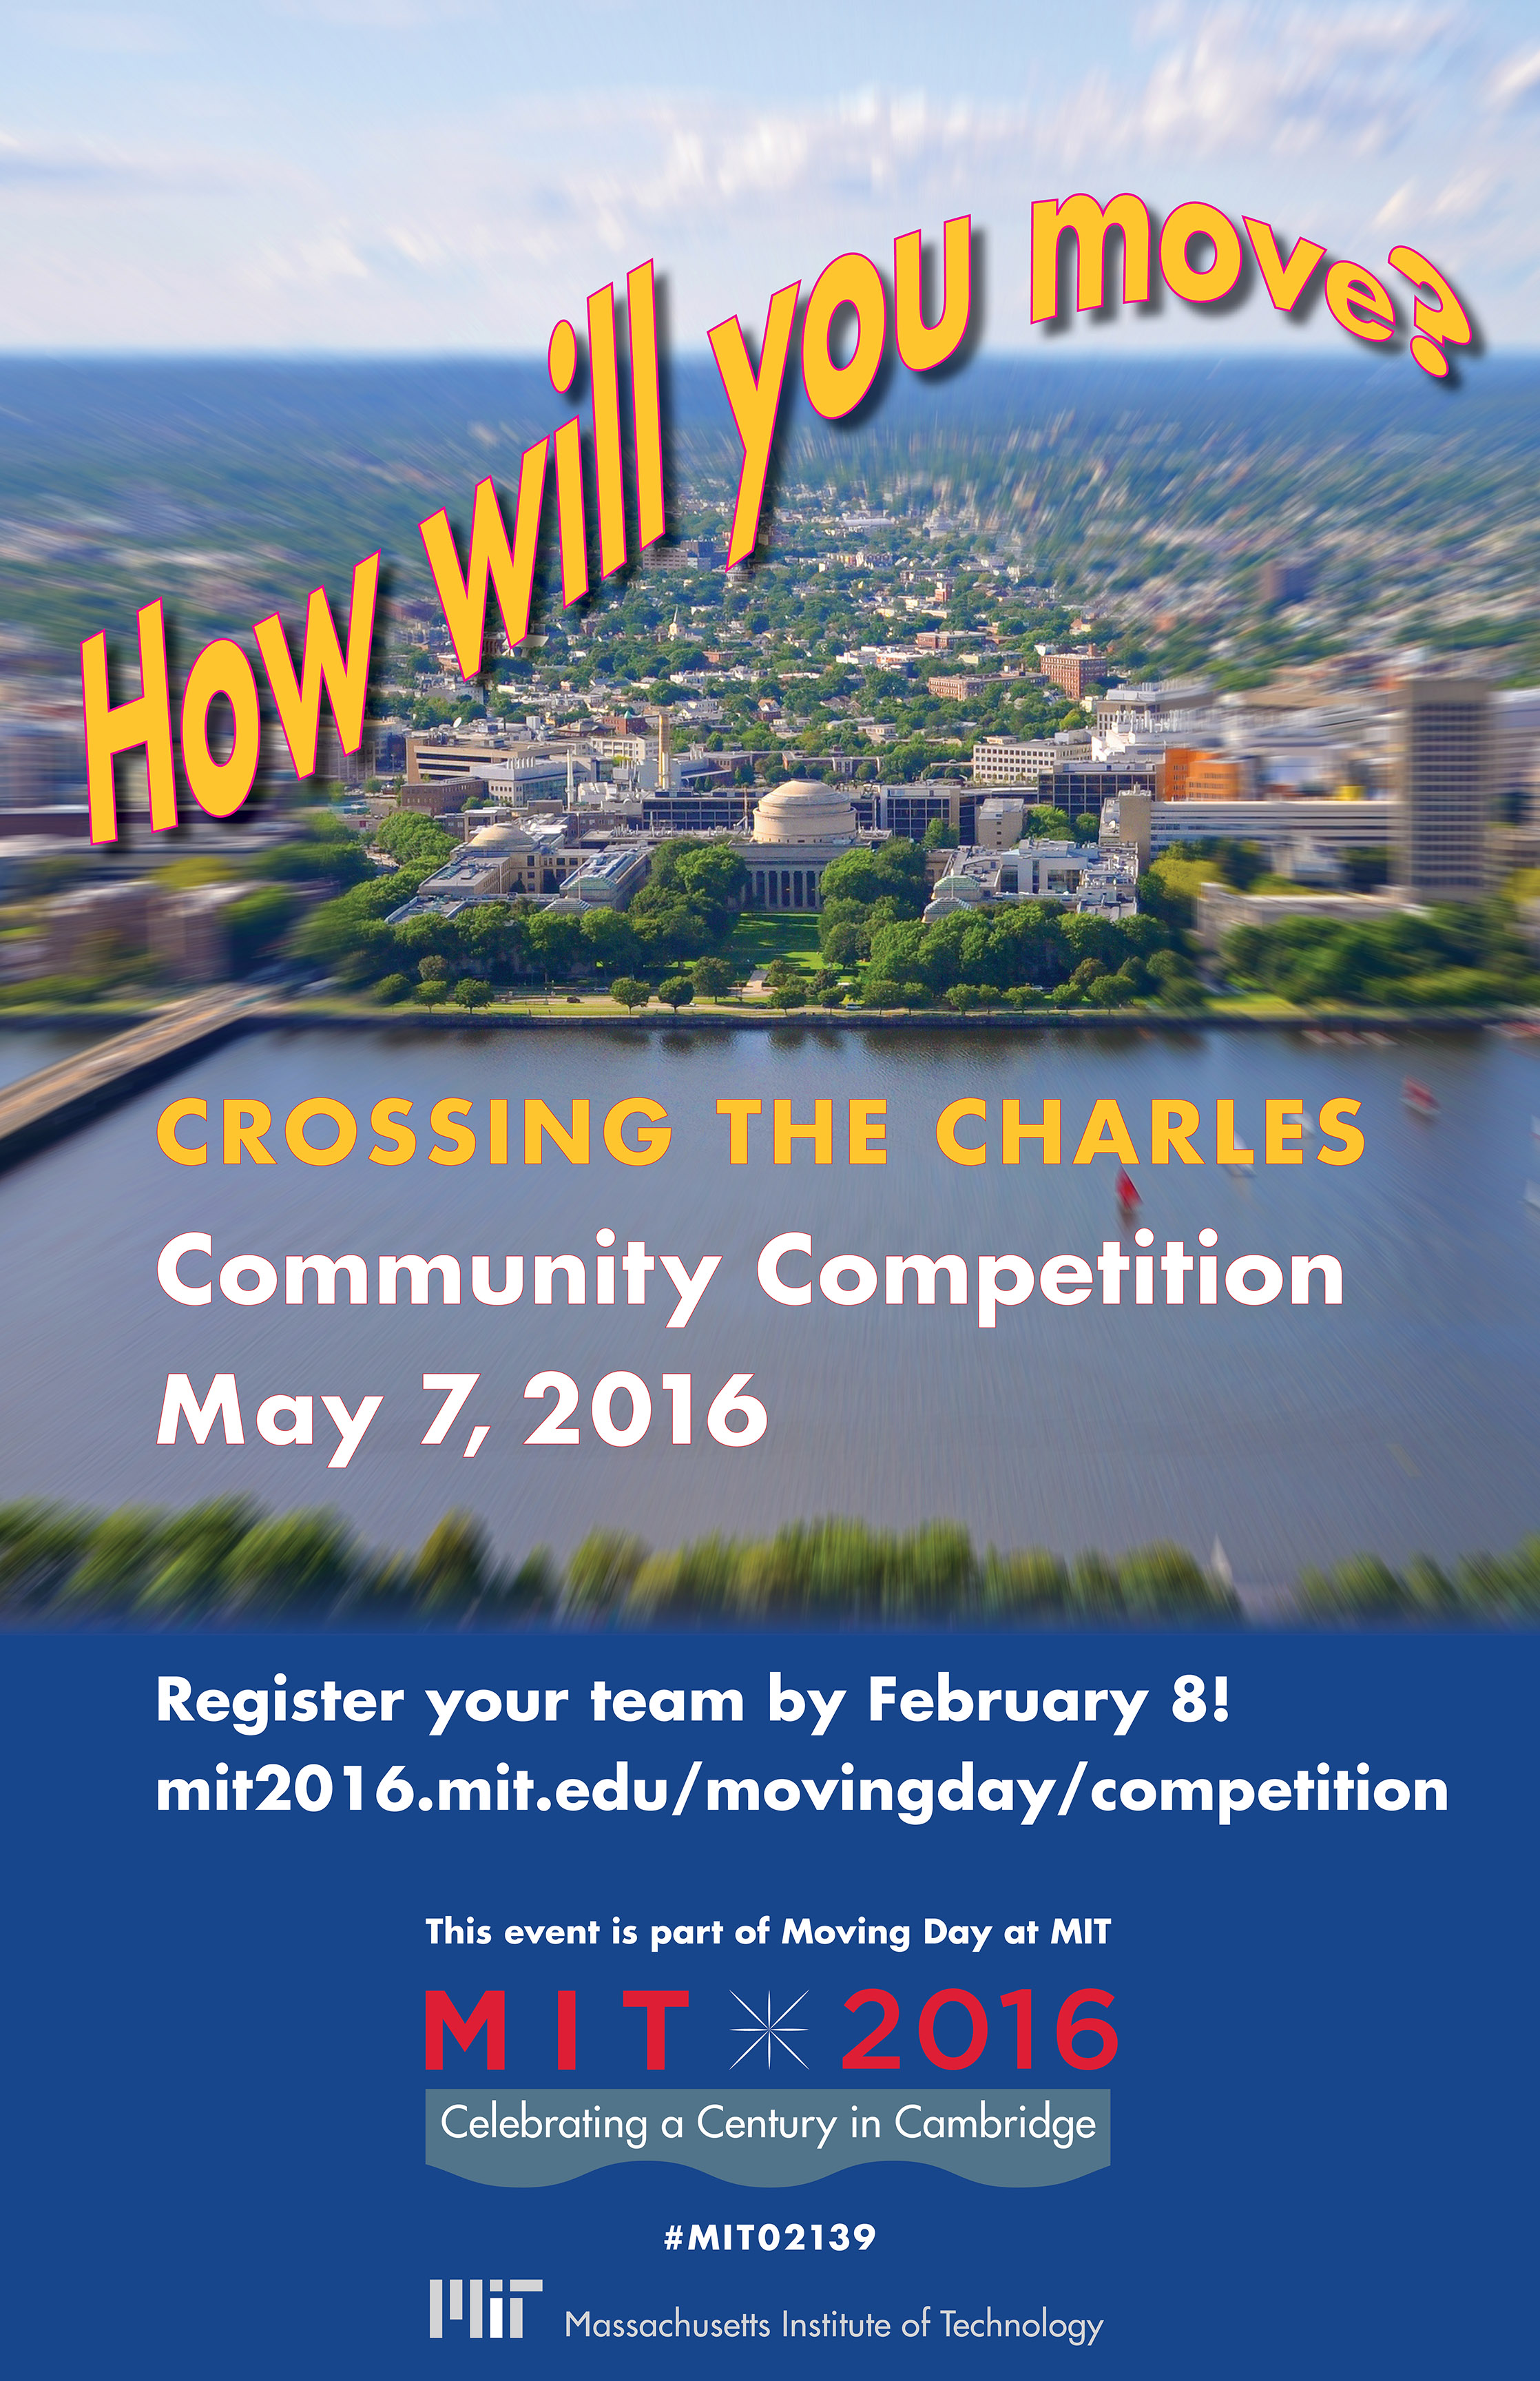 Call for entries for Crossing the Charles competition